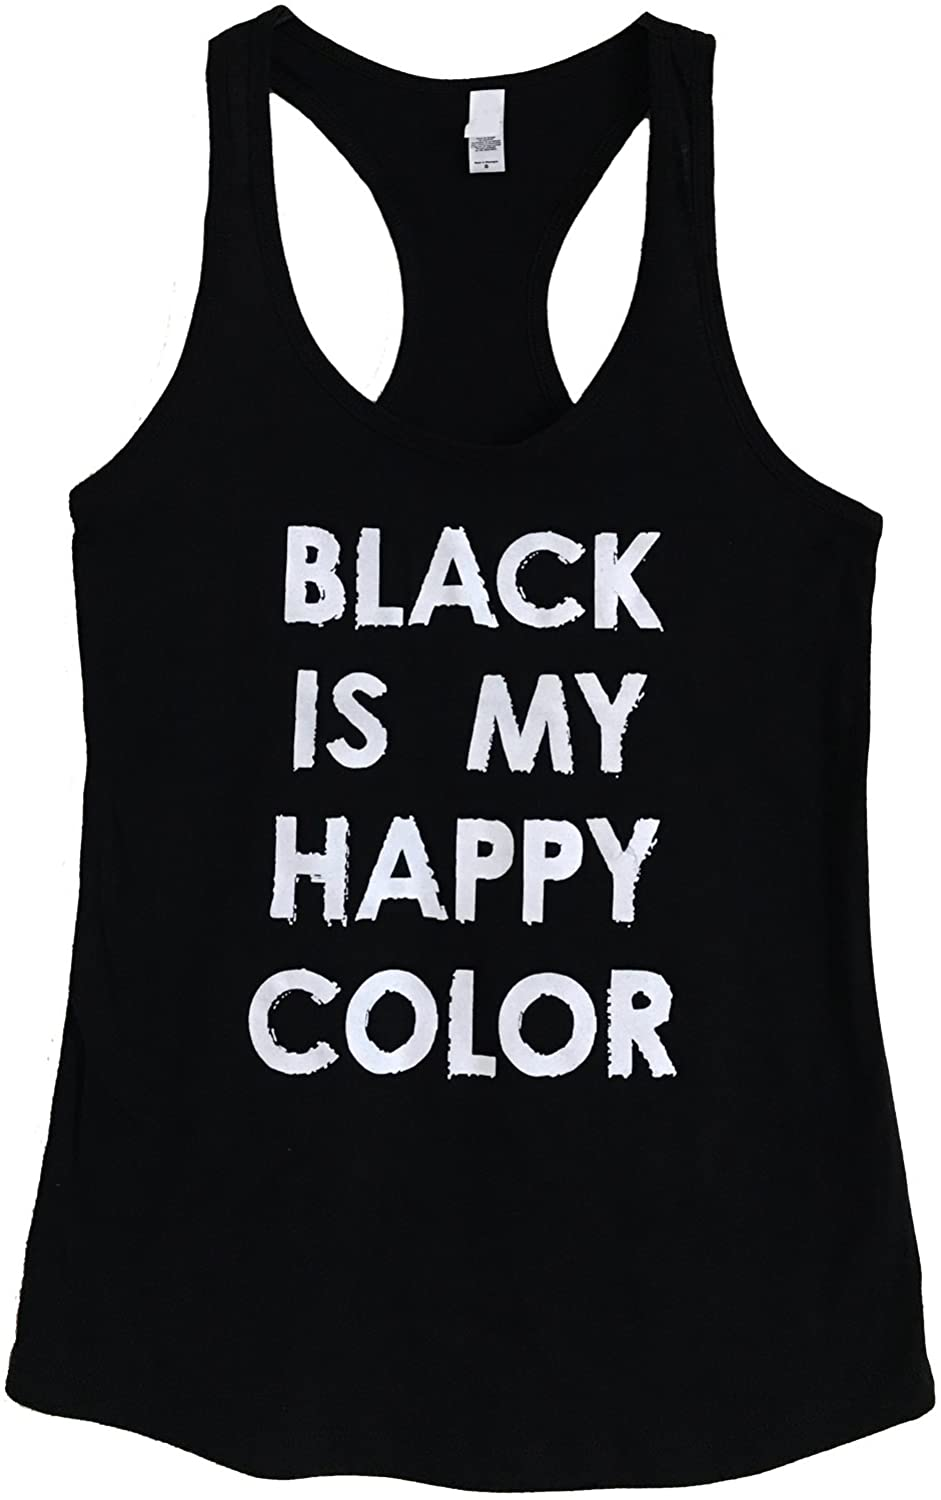 The Bold Banana Women's Black is My Happy Color Tank Top